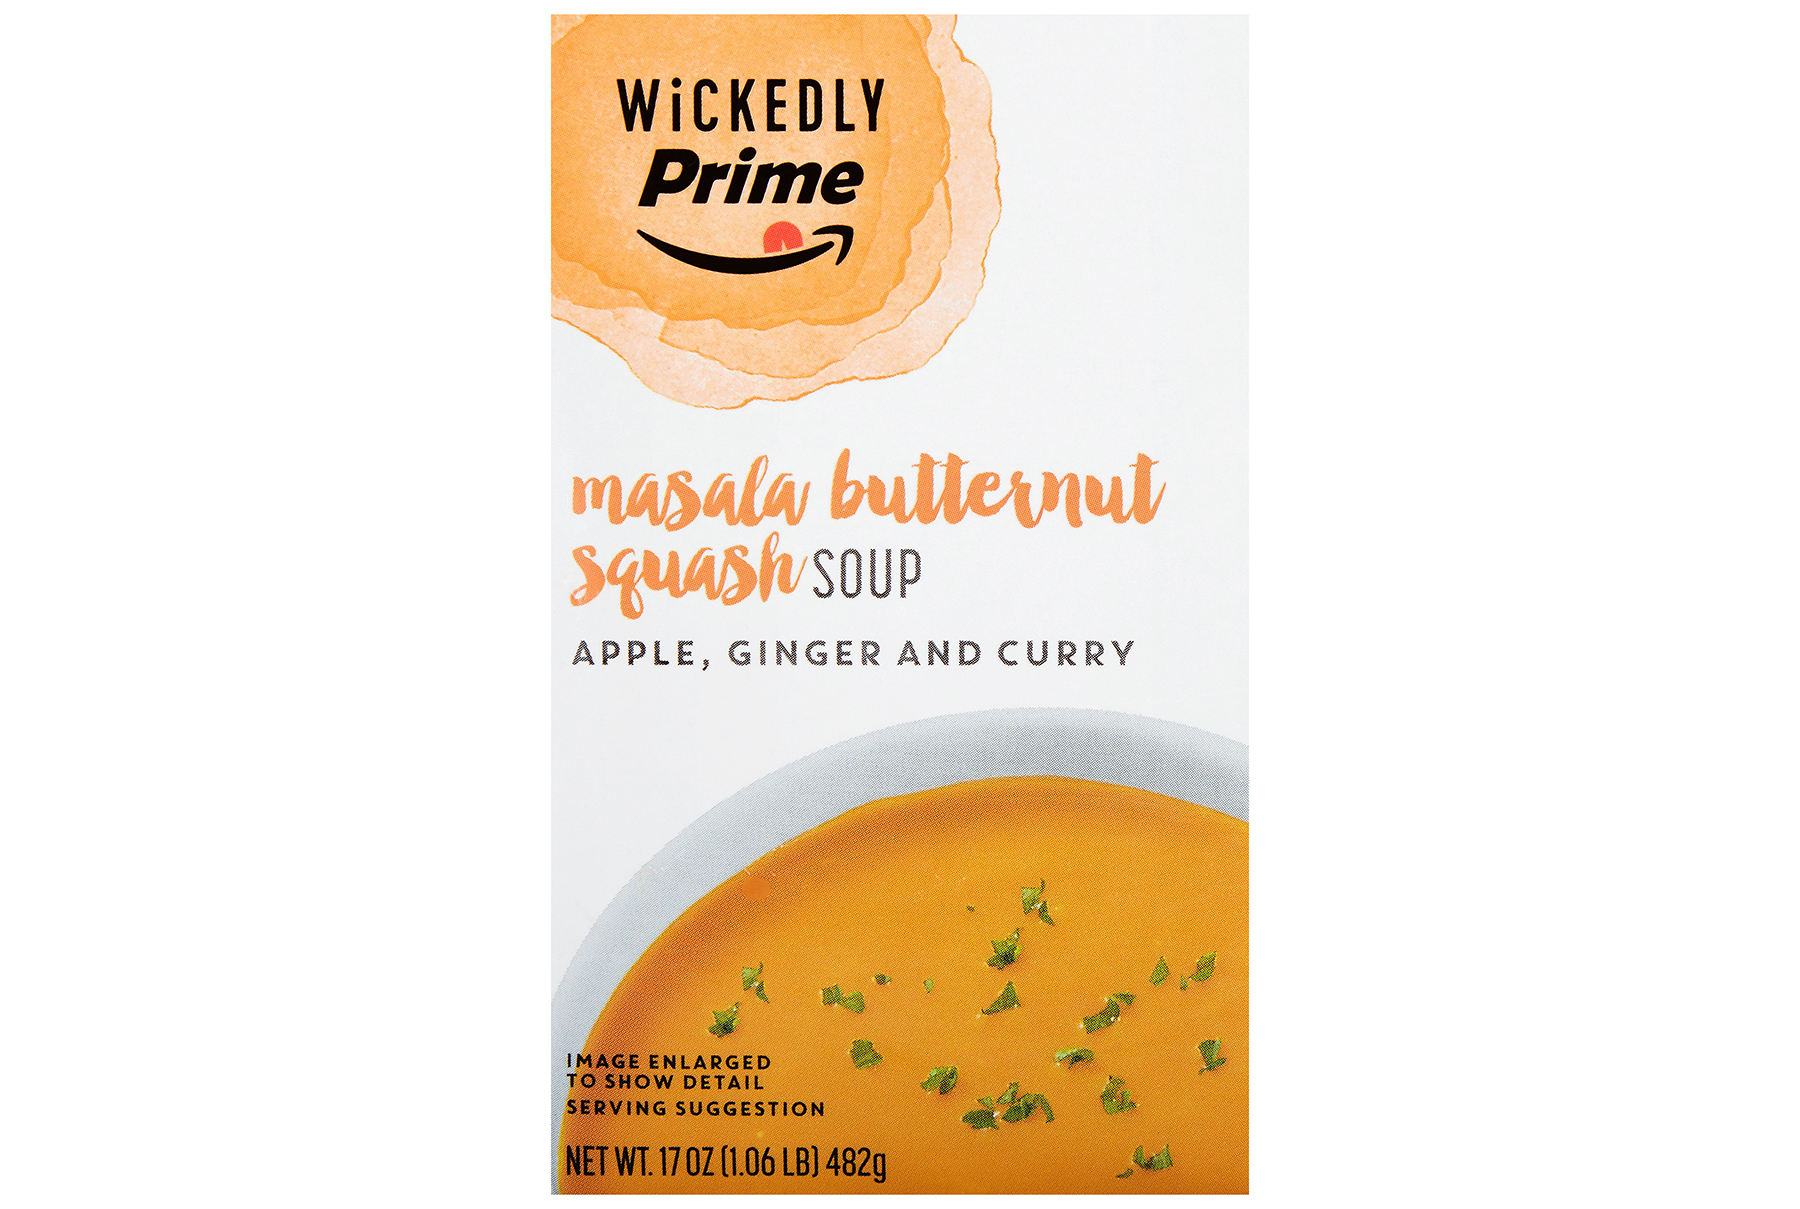 Wickedly Prime Masala Butternut Squash Soup